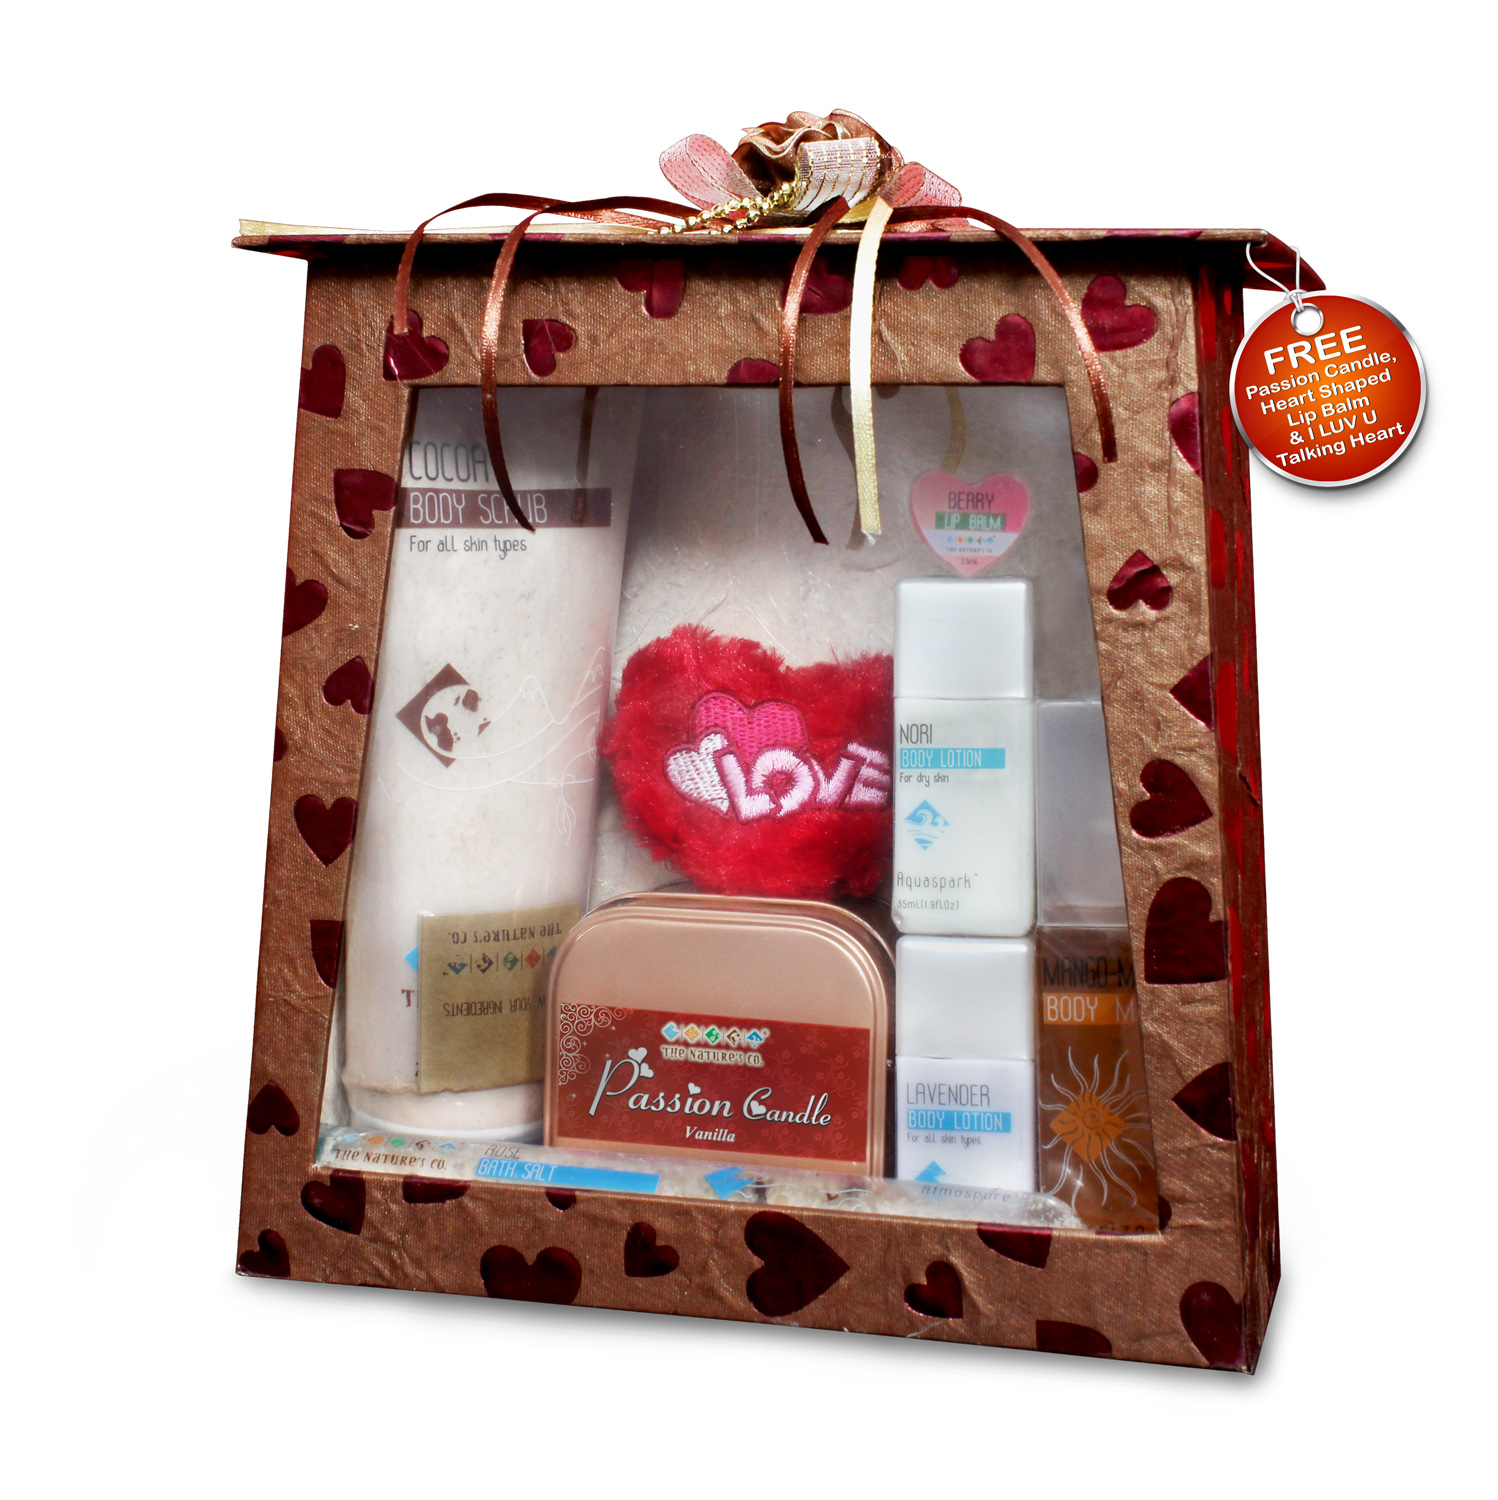 The Natures Co Presents Valentines Day Special Gifts!